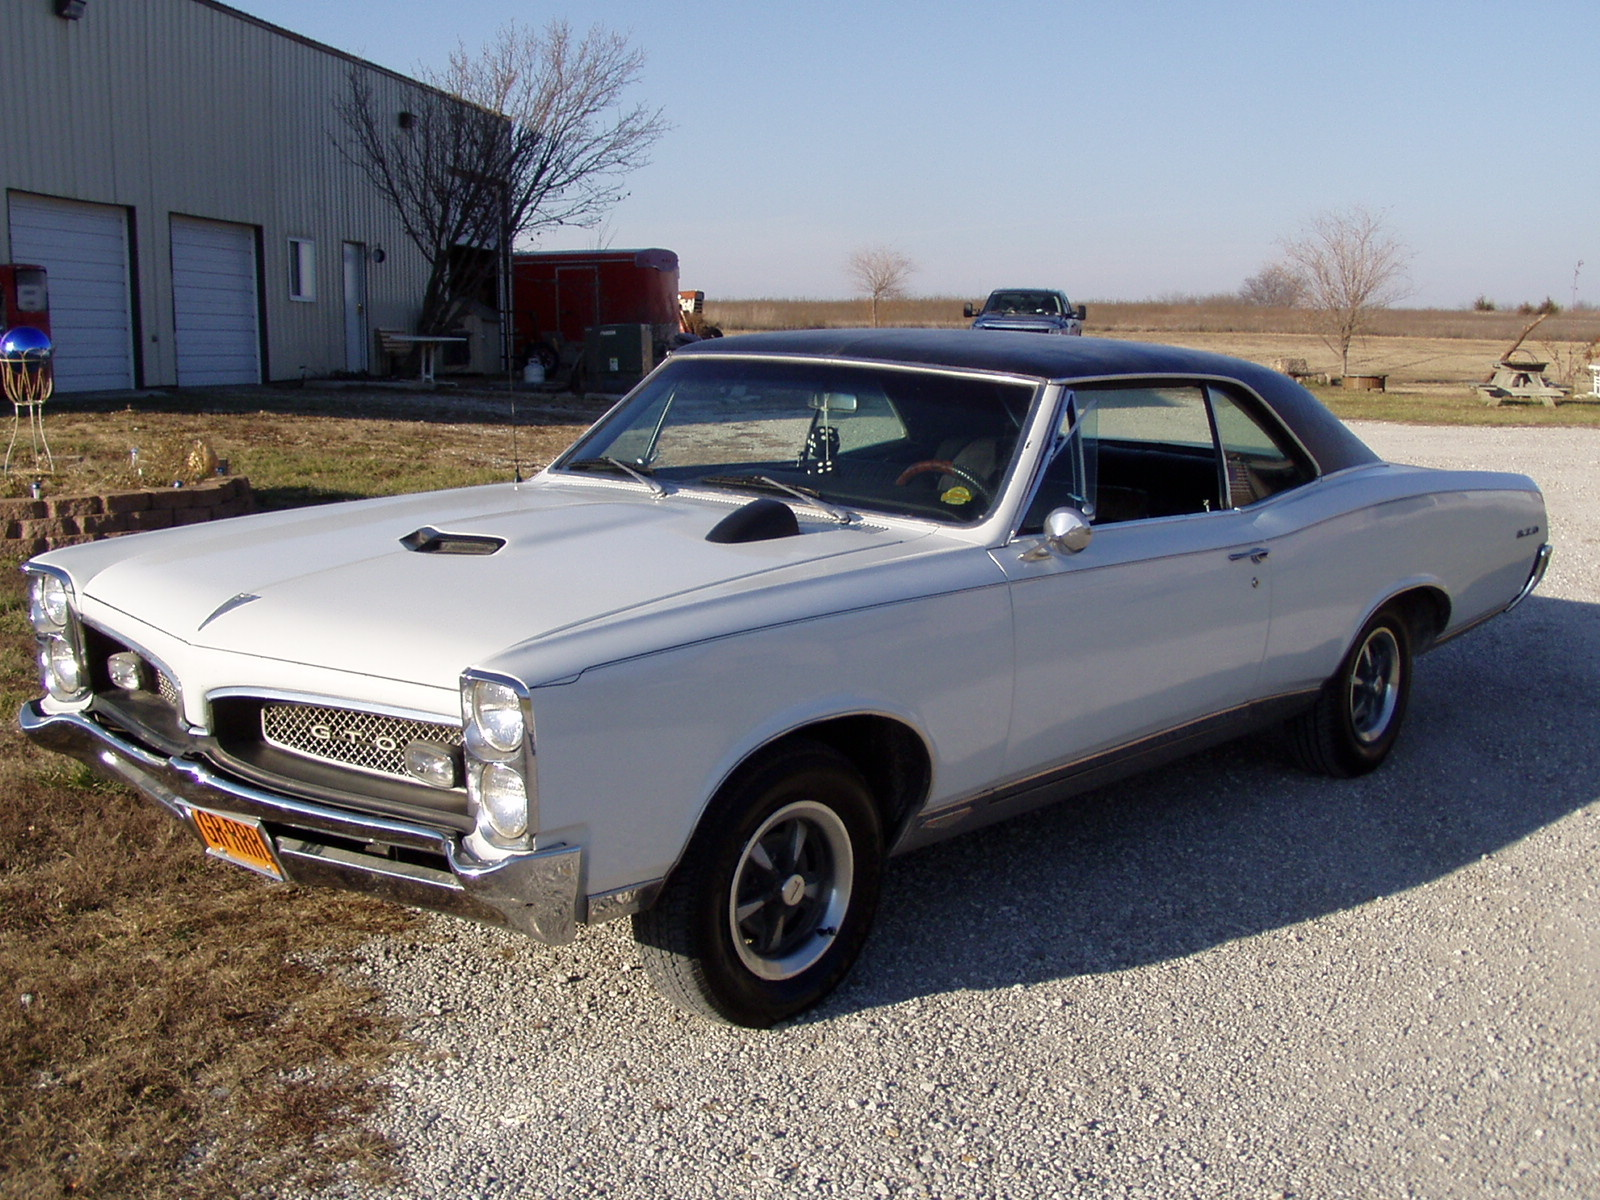 Picture of 1967 Pontiac GTO exterior 1600x1200